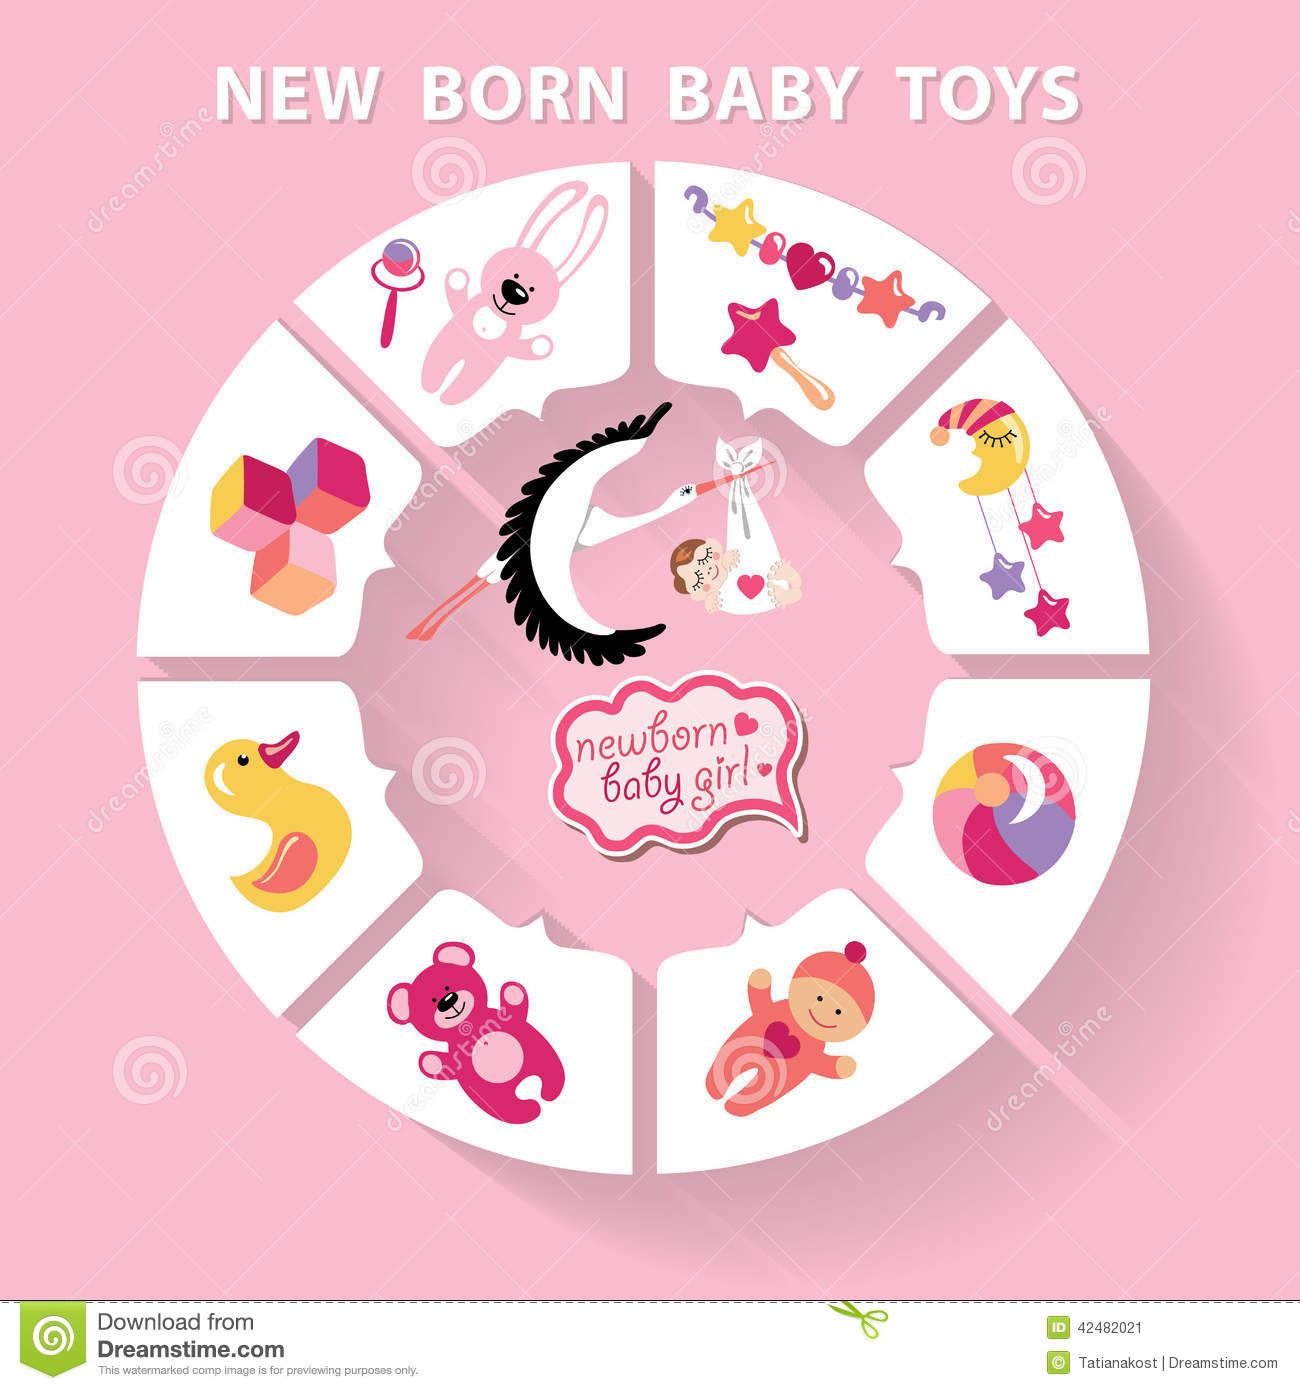 New Baby Toys : Circle baby infographic new born girl toys stock